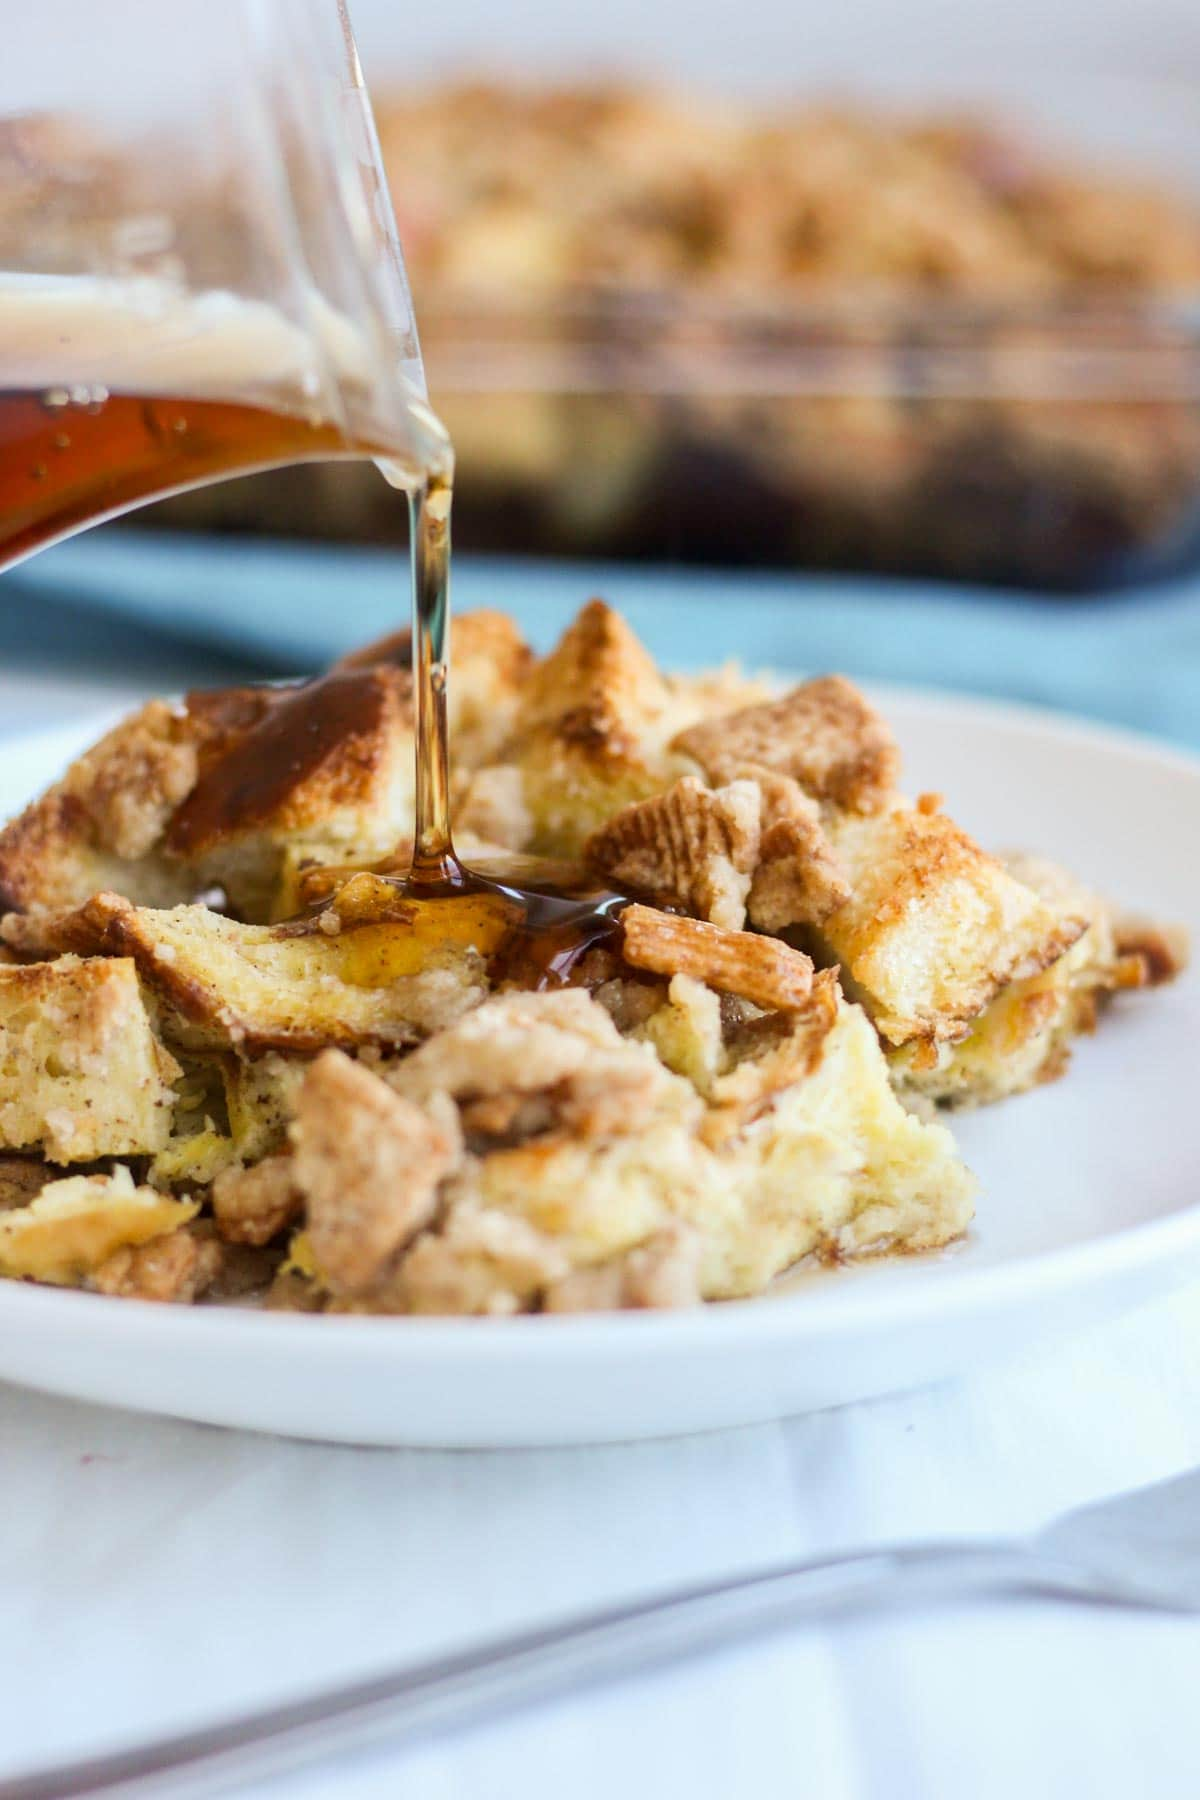 Cinnamon Toast Crunch Breakfast Casserole